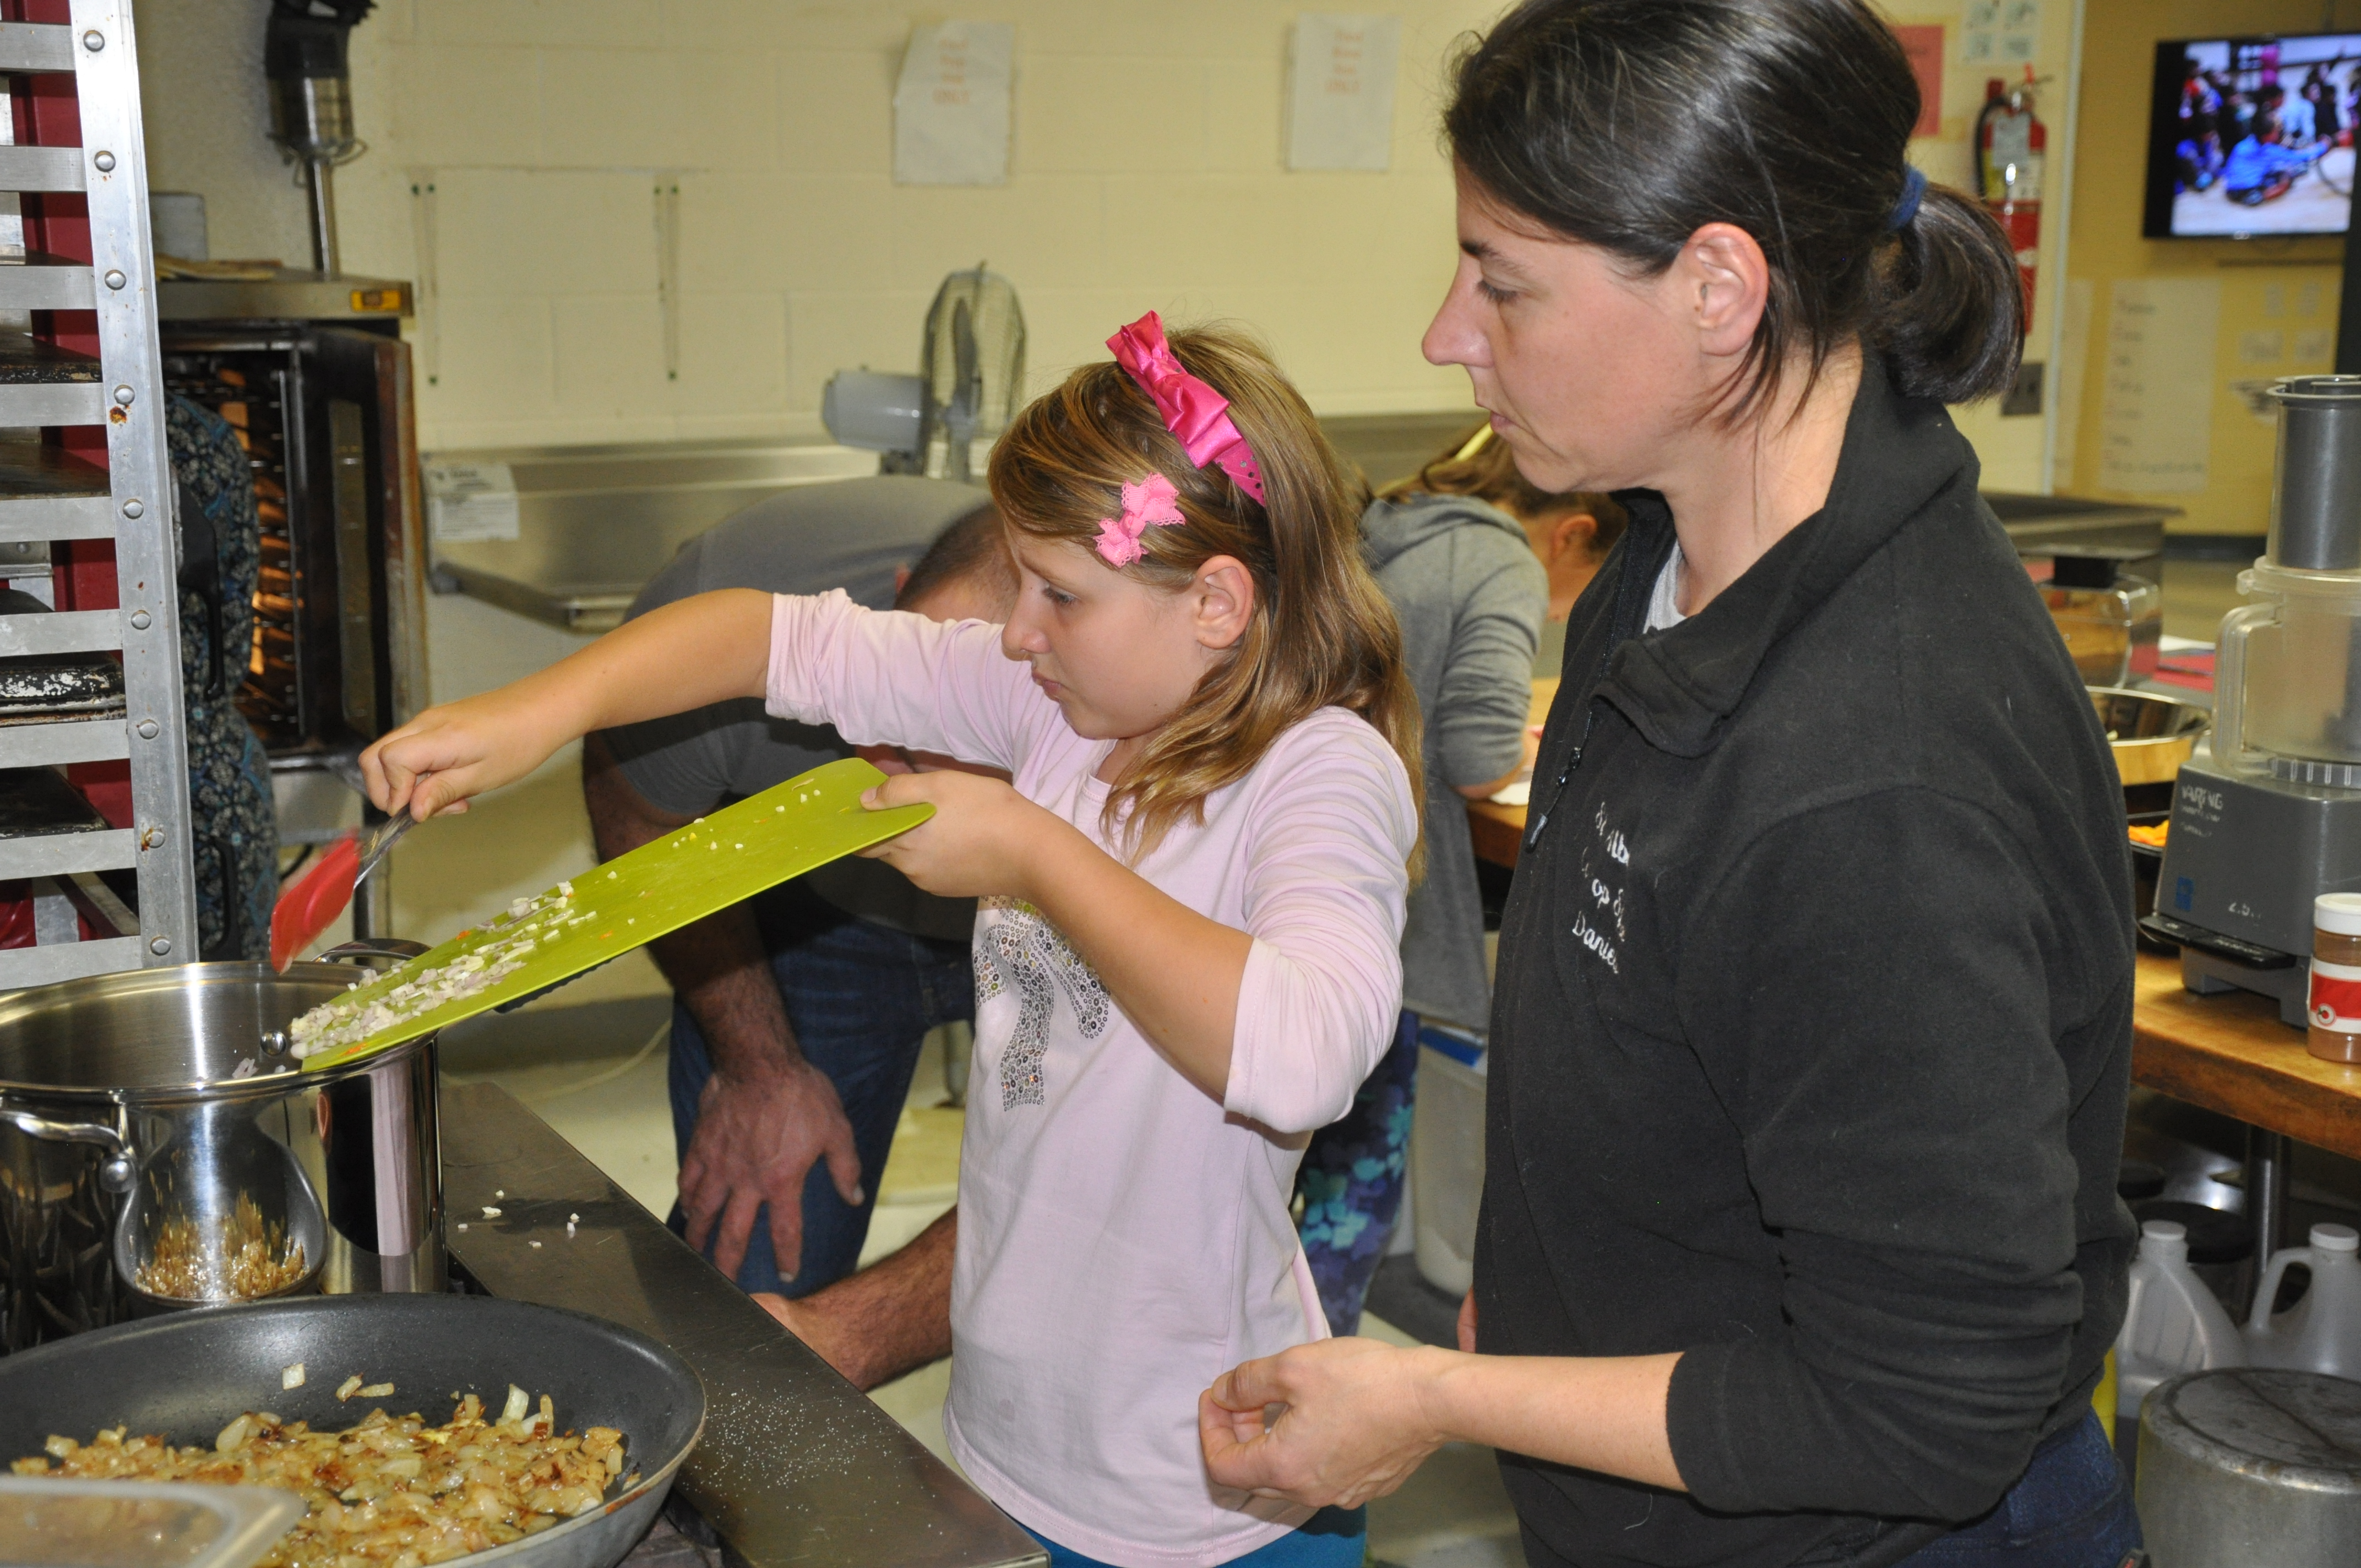 A student cooks in the kitchen at Fletcher Elementary School